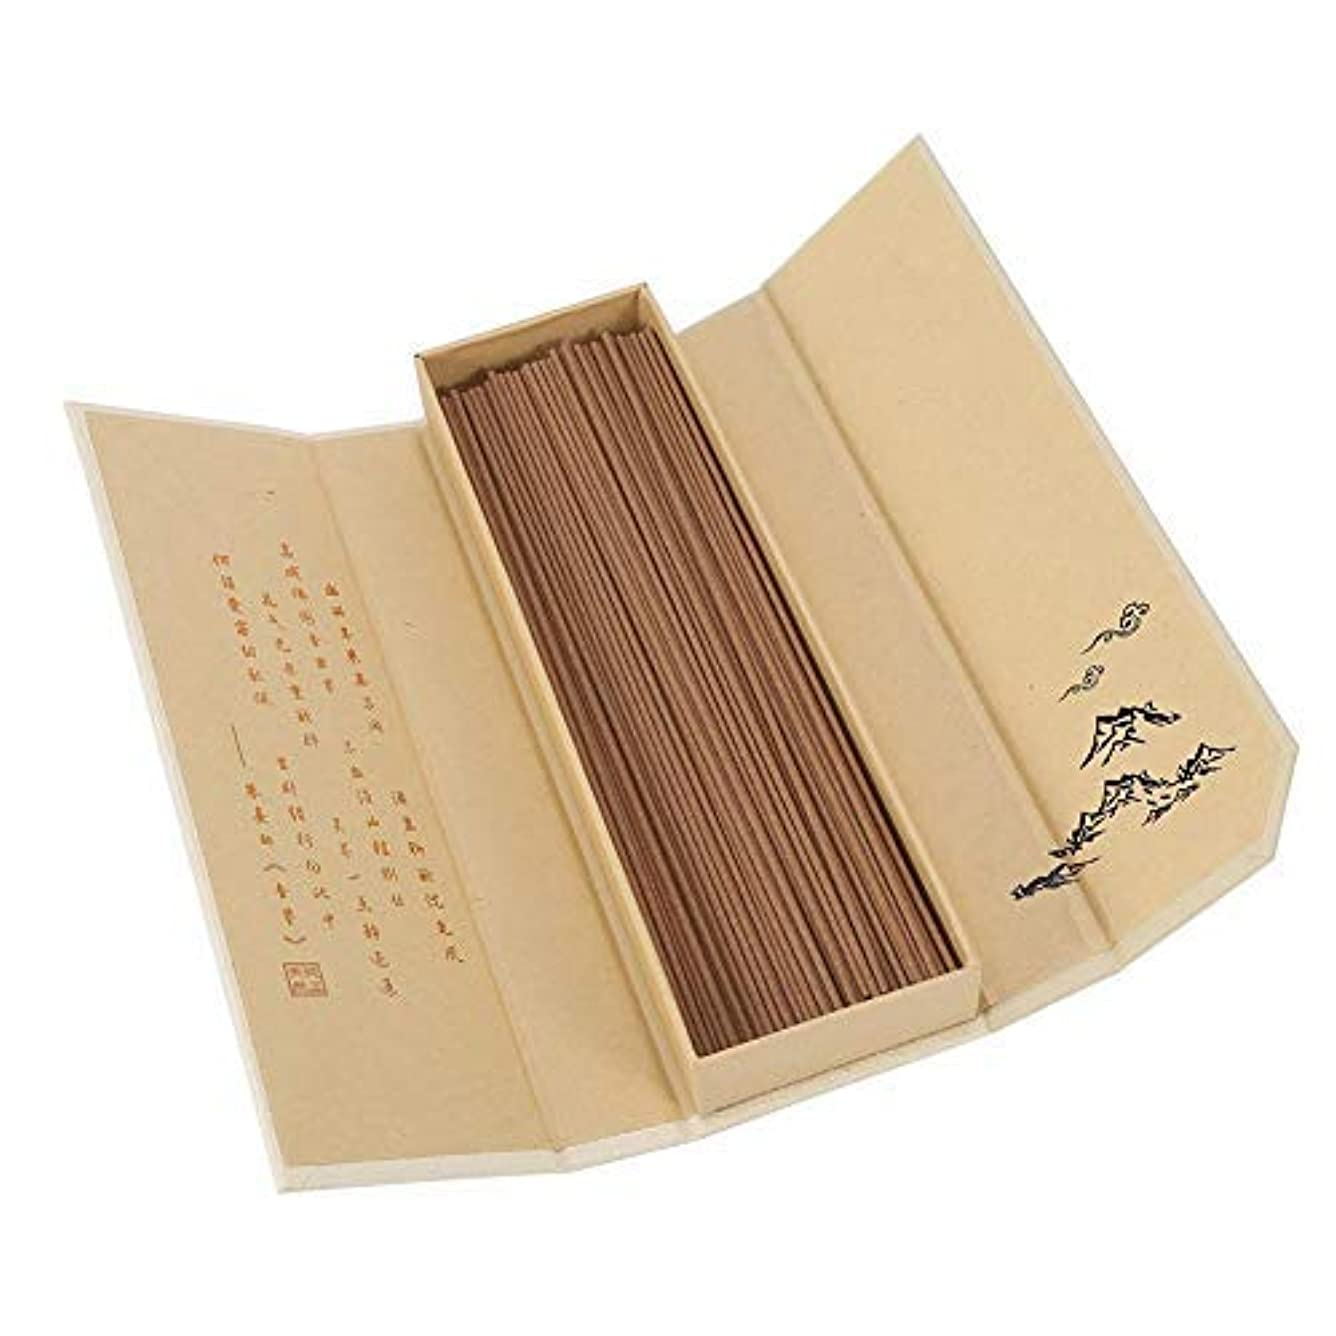 ファランクス趣味太鼓腹Zerodis 180pcs/pack Natural Sandalwood Incense Buddhist Aroma Non-Toxic Incense Sticks for Household SPA Bathroom...